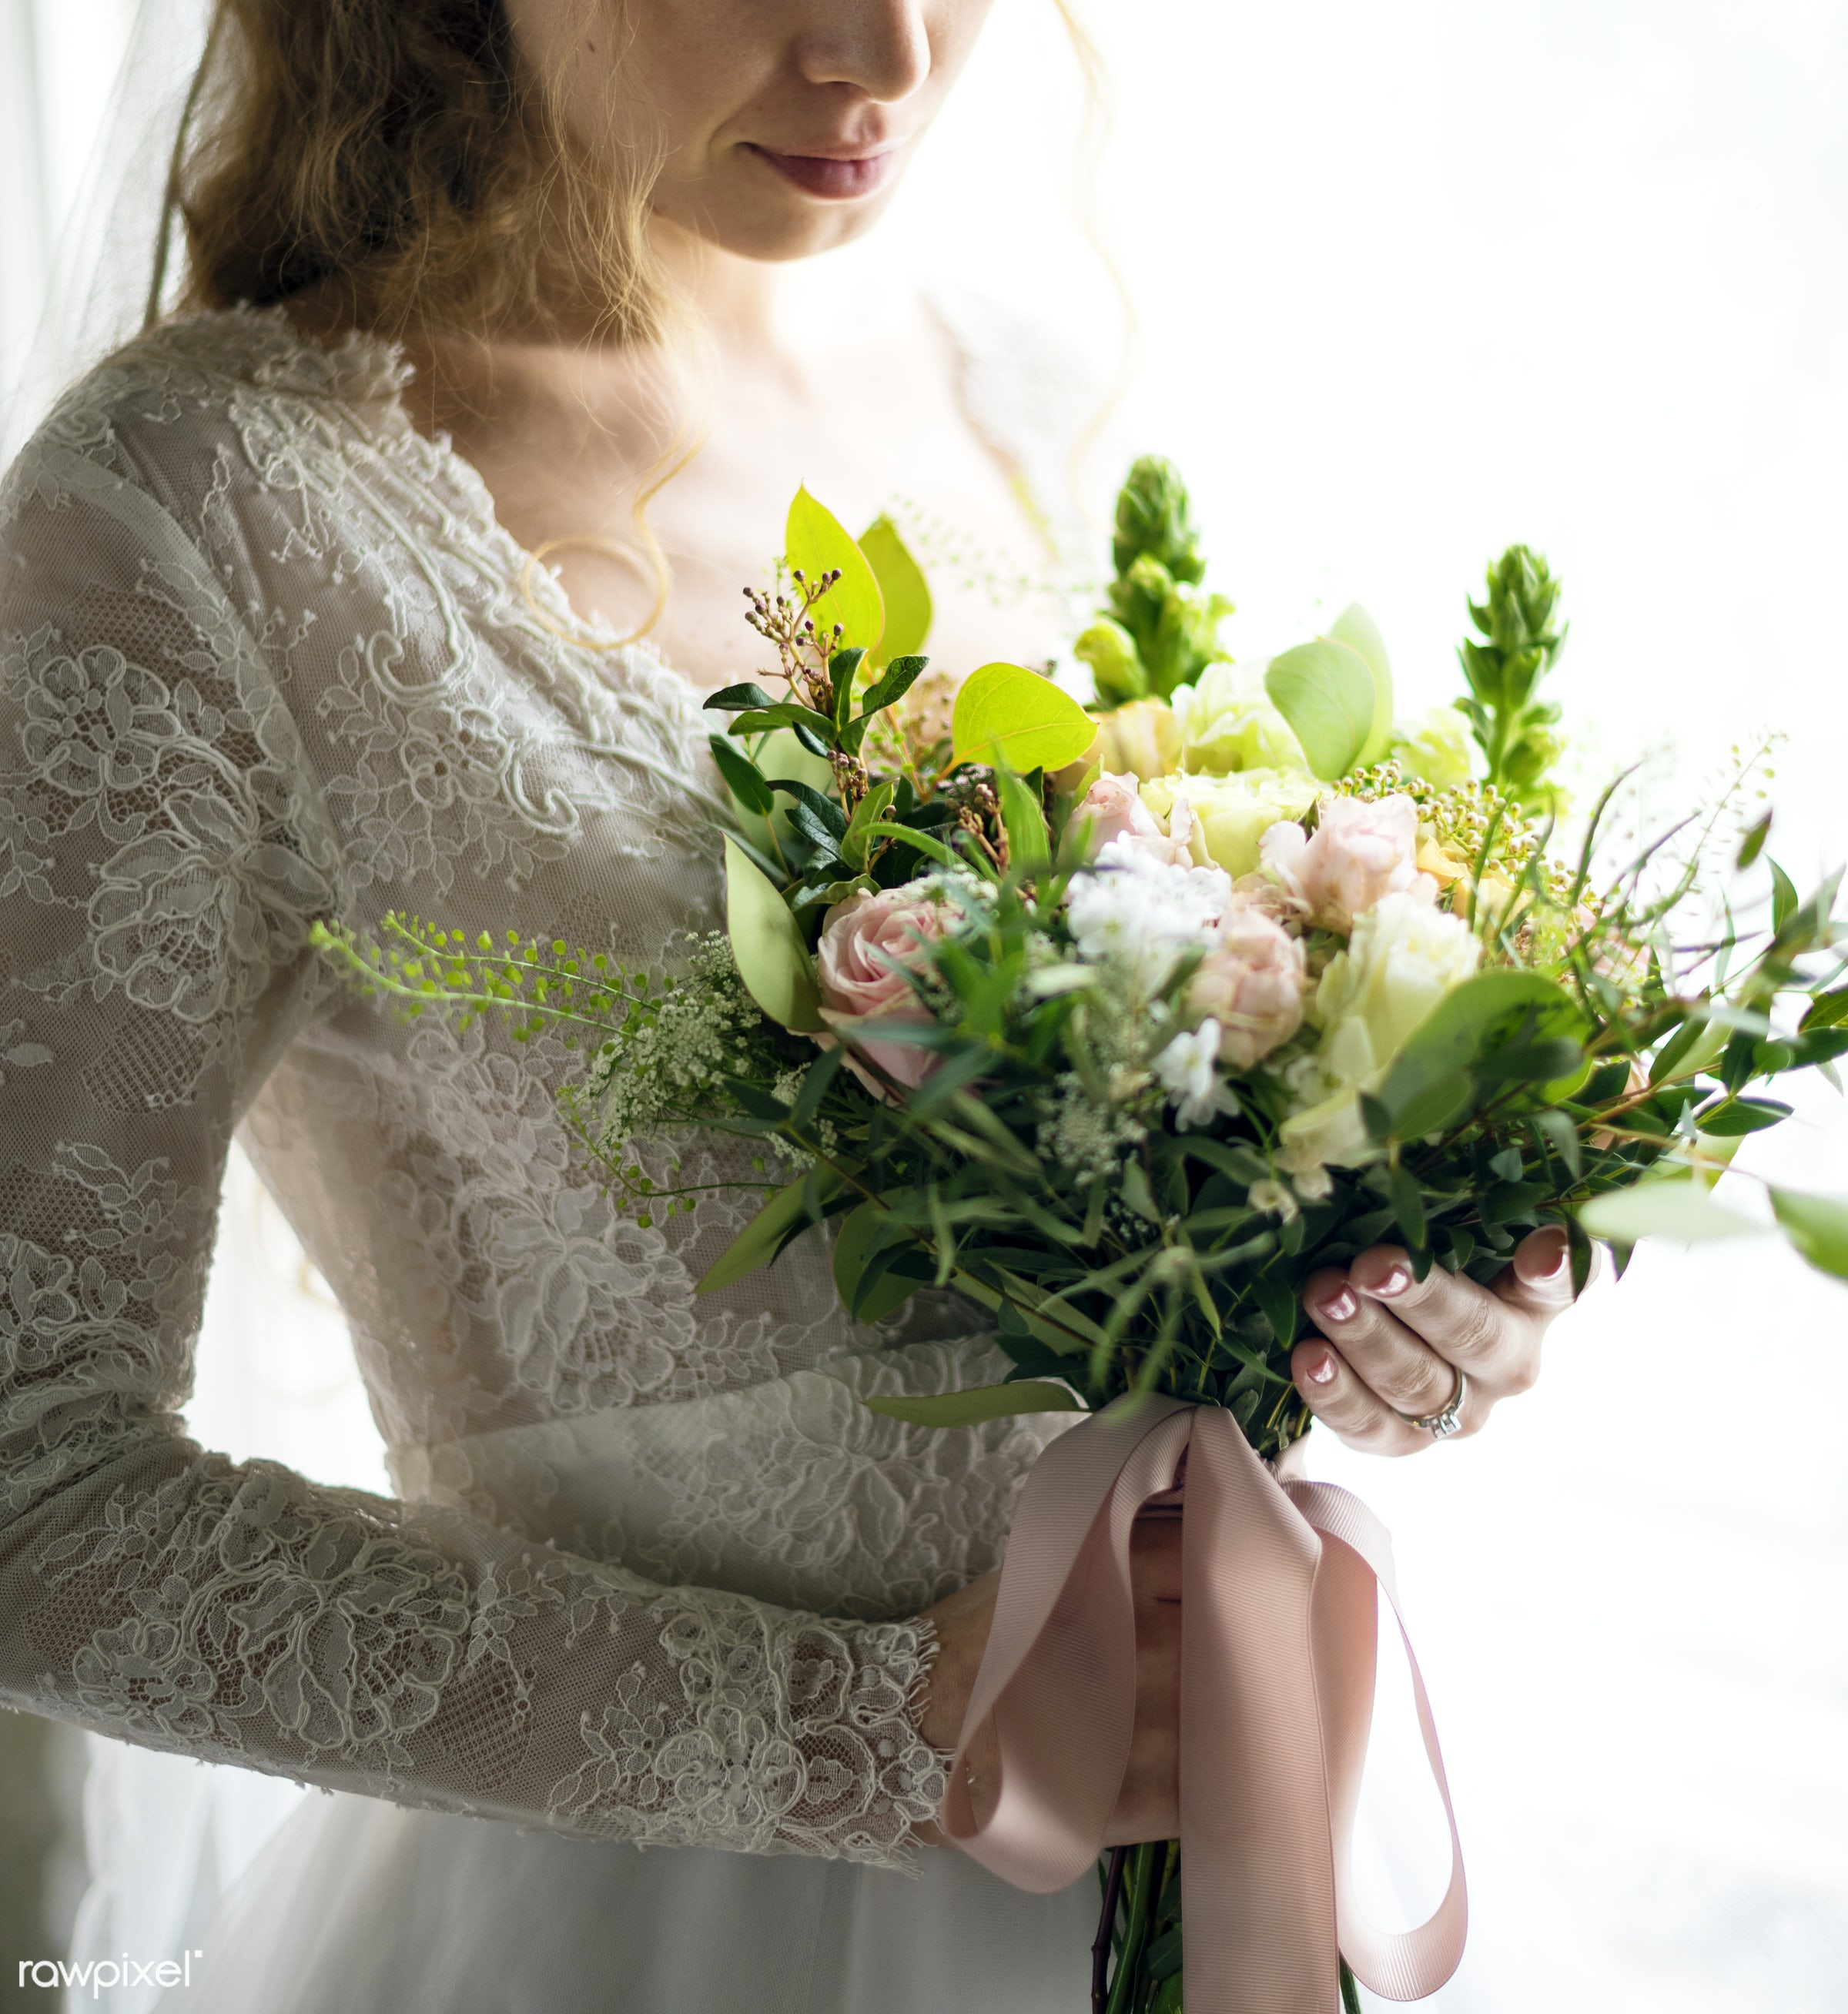 bouquet, person, holding, people, caucasian, love, glamour, woman, gown, flowers, cheerful, marry, preparation, white,...